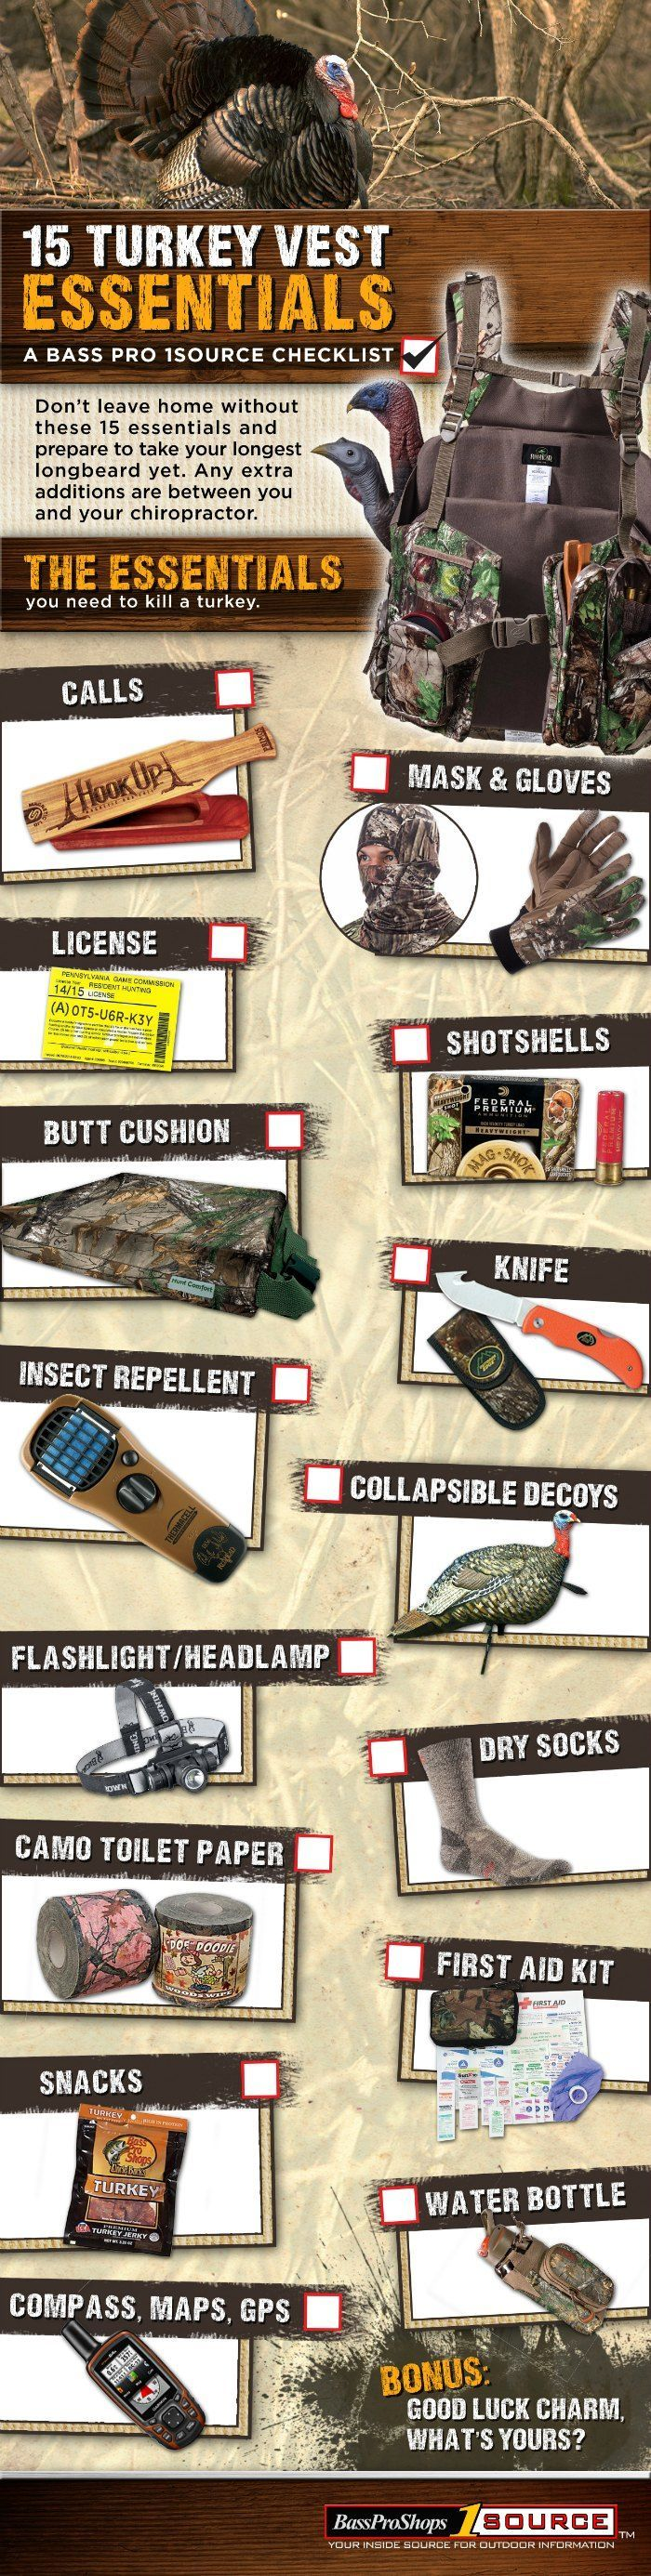 15 Turkey Vest Essentials (Checklist) // #BassProShops #1Source #Infographic #turkeyhunting